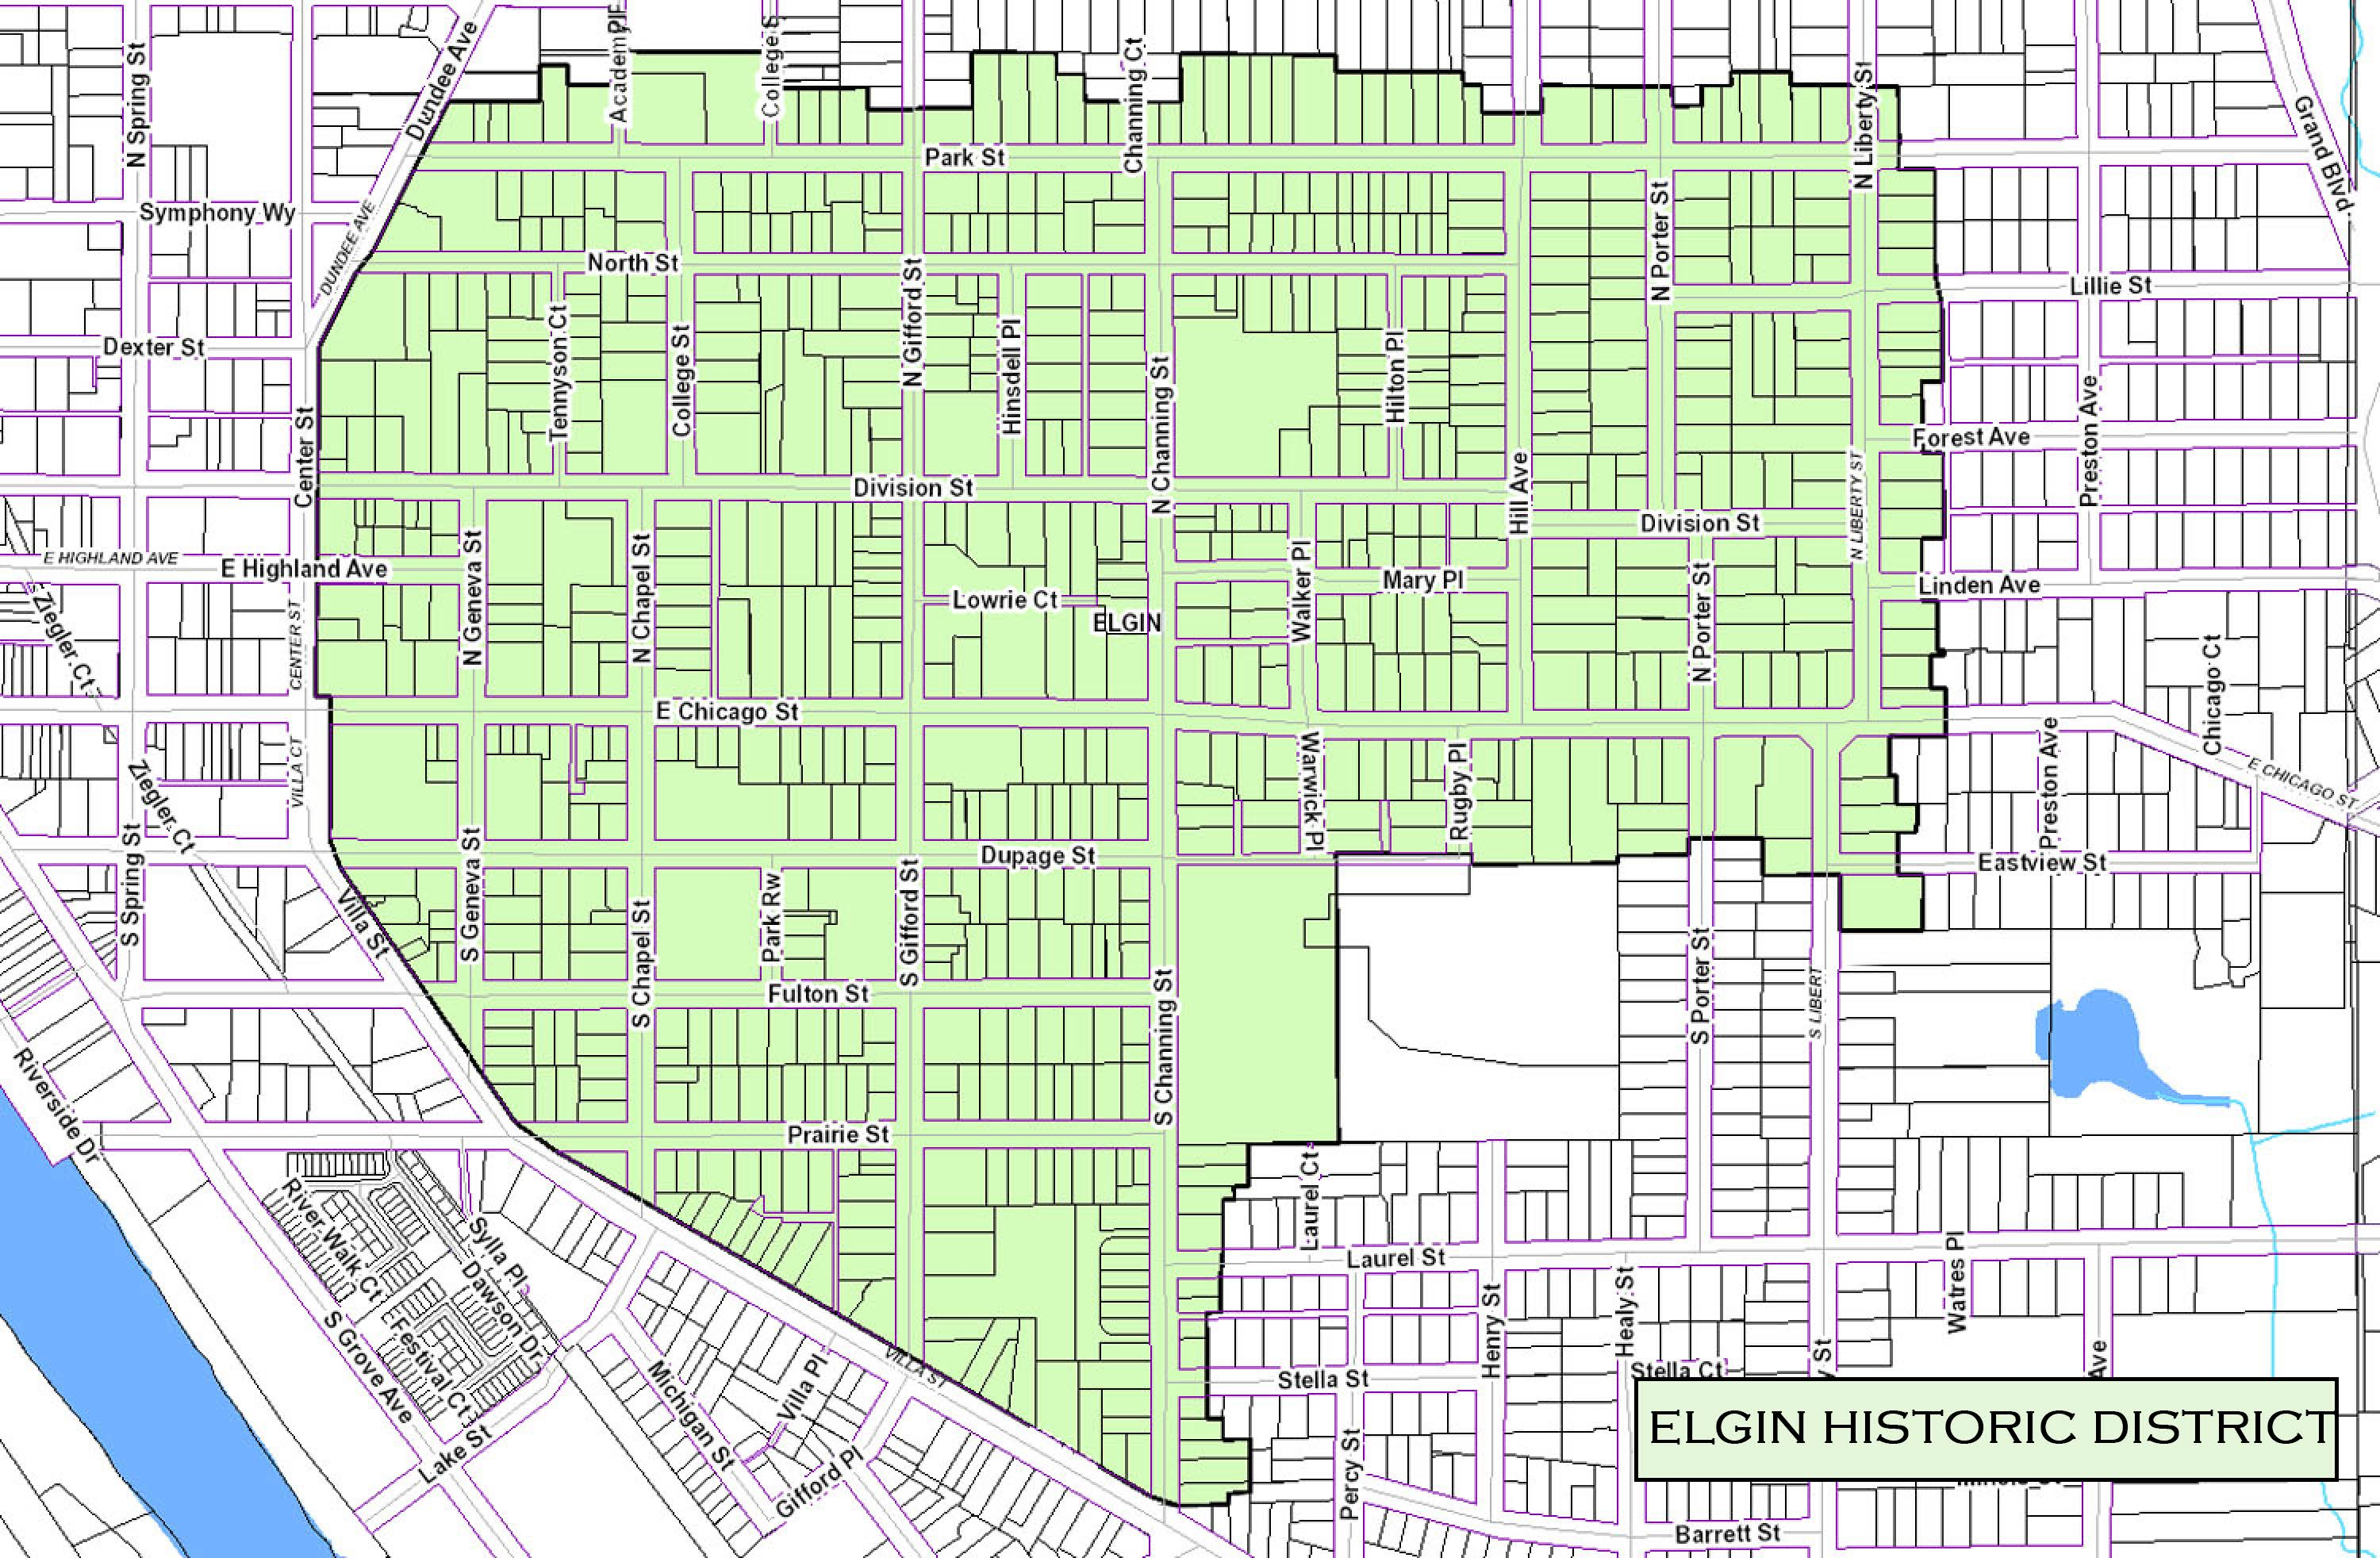 Elgin Historic District Map